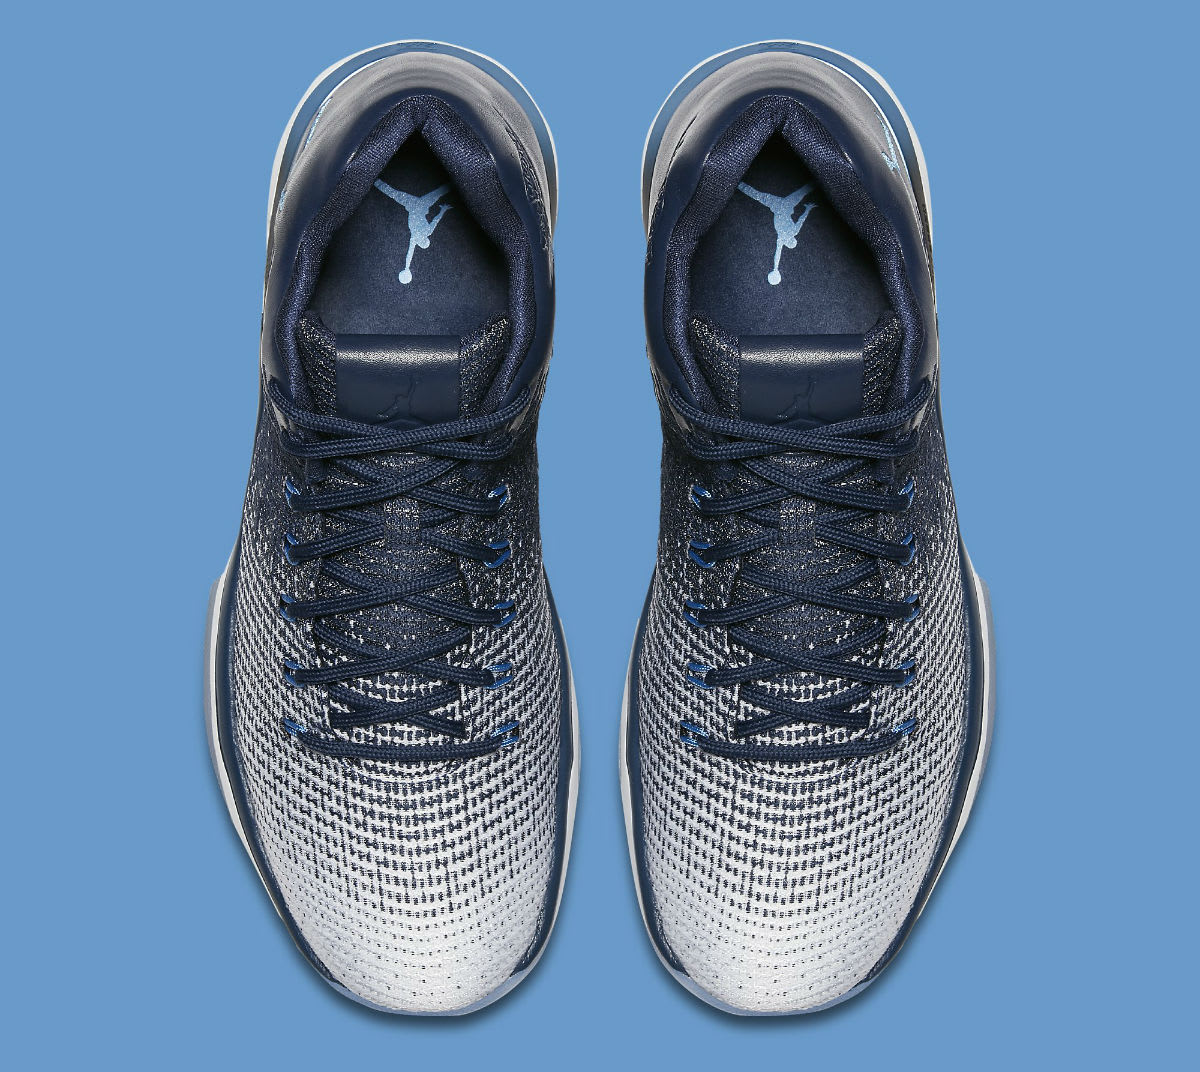 ... midnight navy and university blue ice blue for 39d79 1fb67  australia air  jordan 31 low unc navy release date top 897564 400 b868e 79264 5047a6e4c8